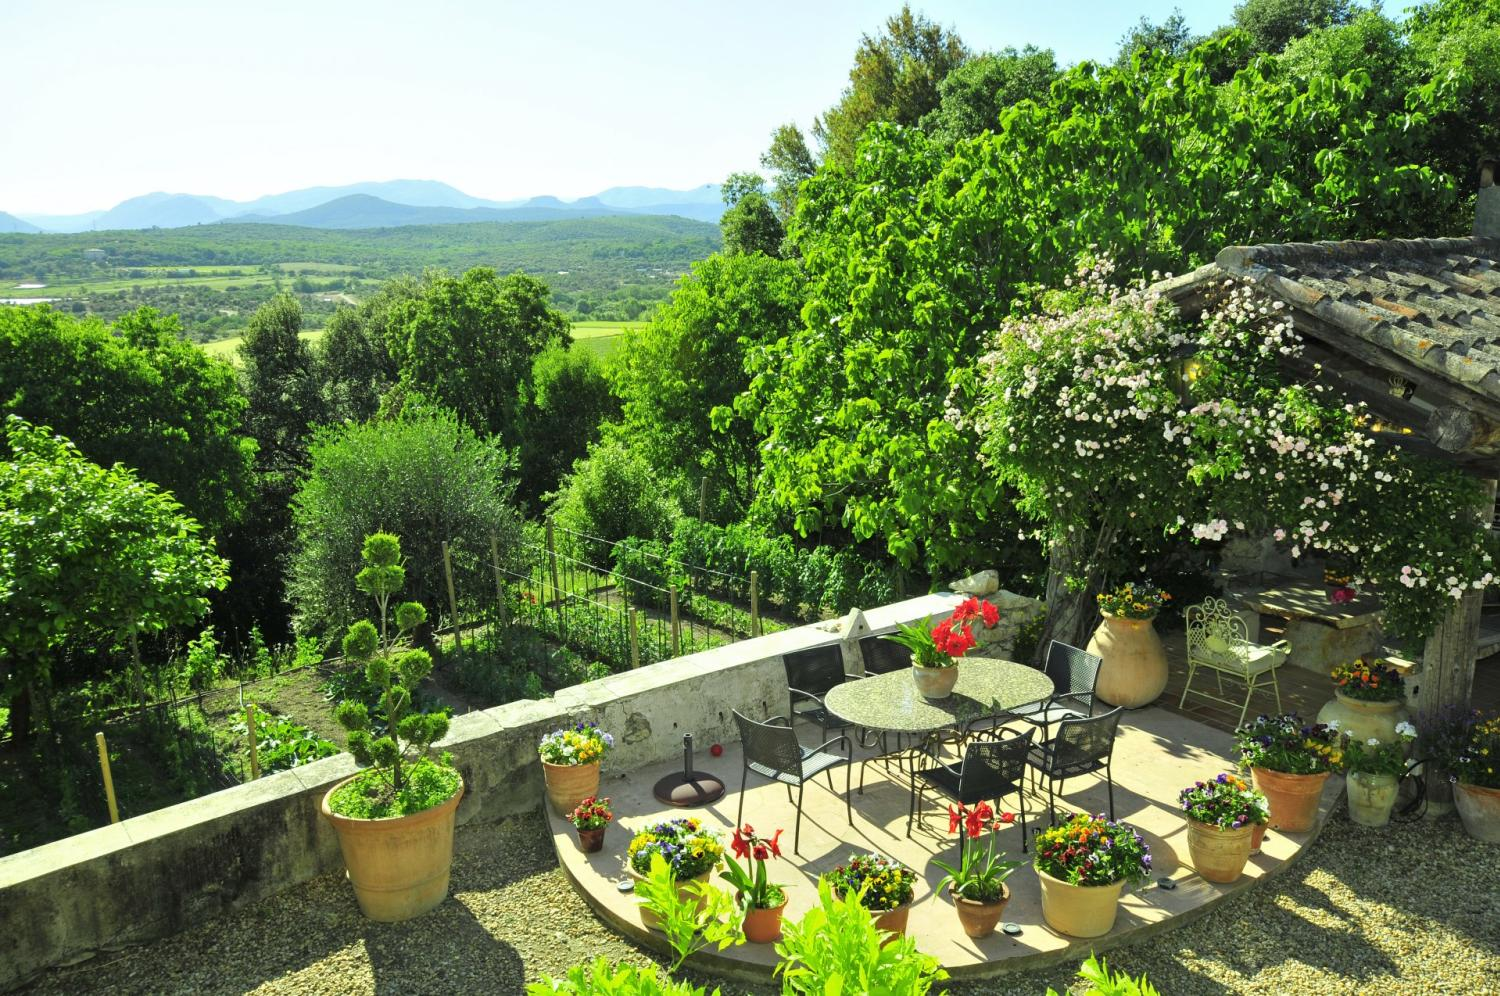 Outdoor Seating and View, Le Domaine Joli, Sauve, Languedoc.